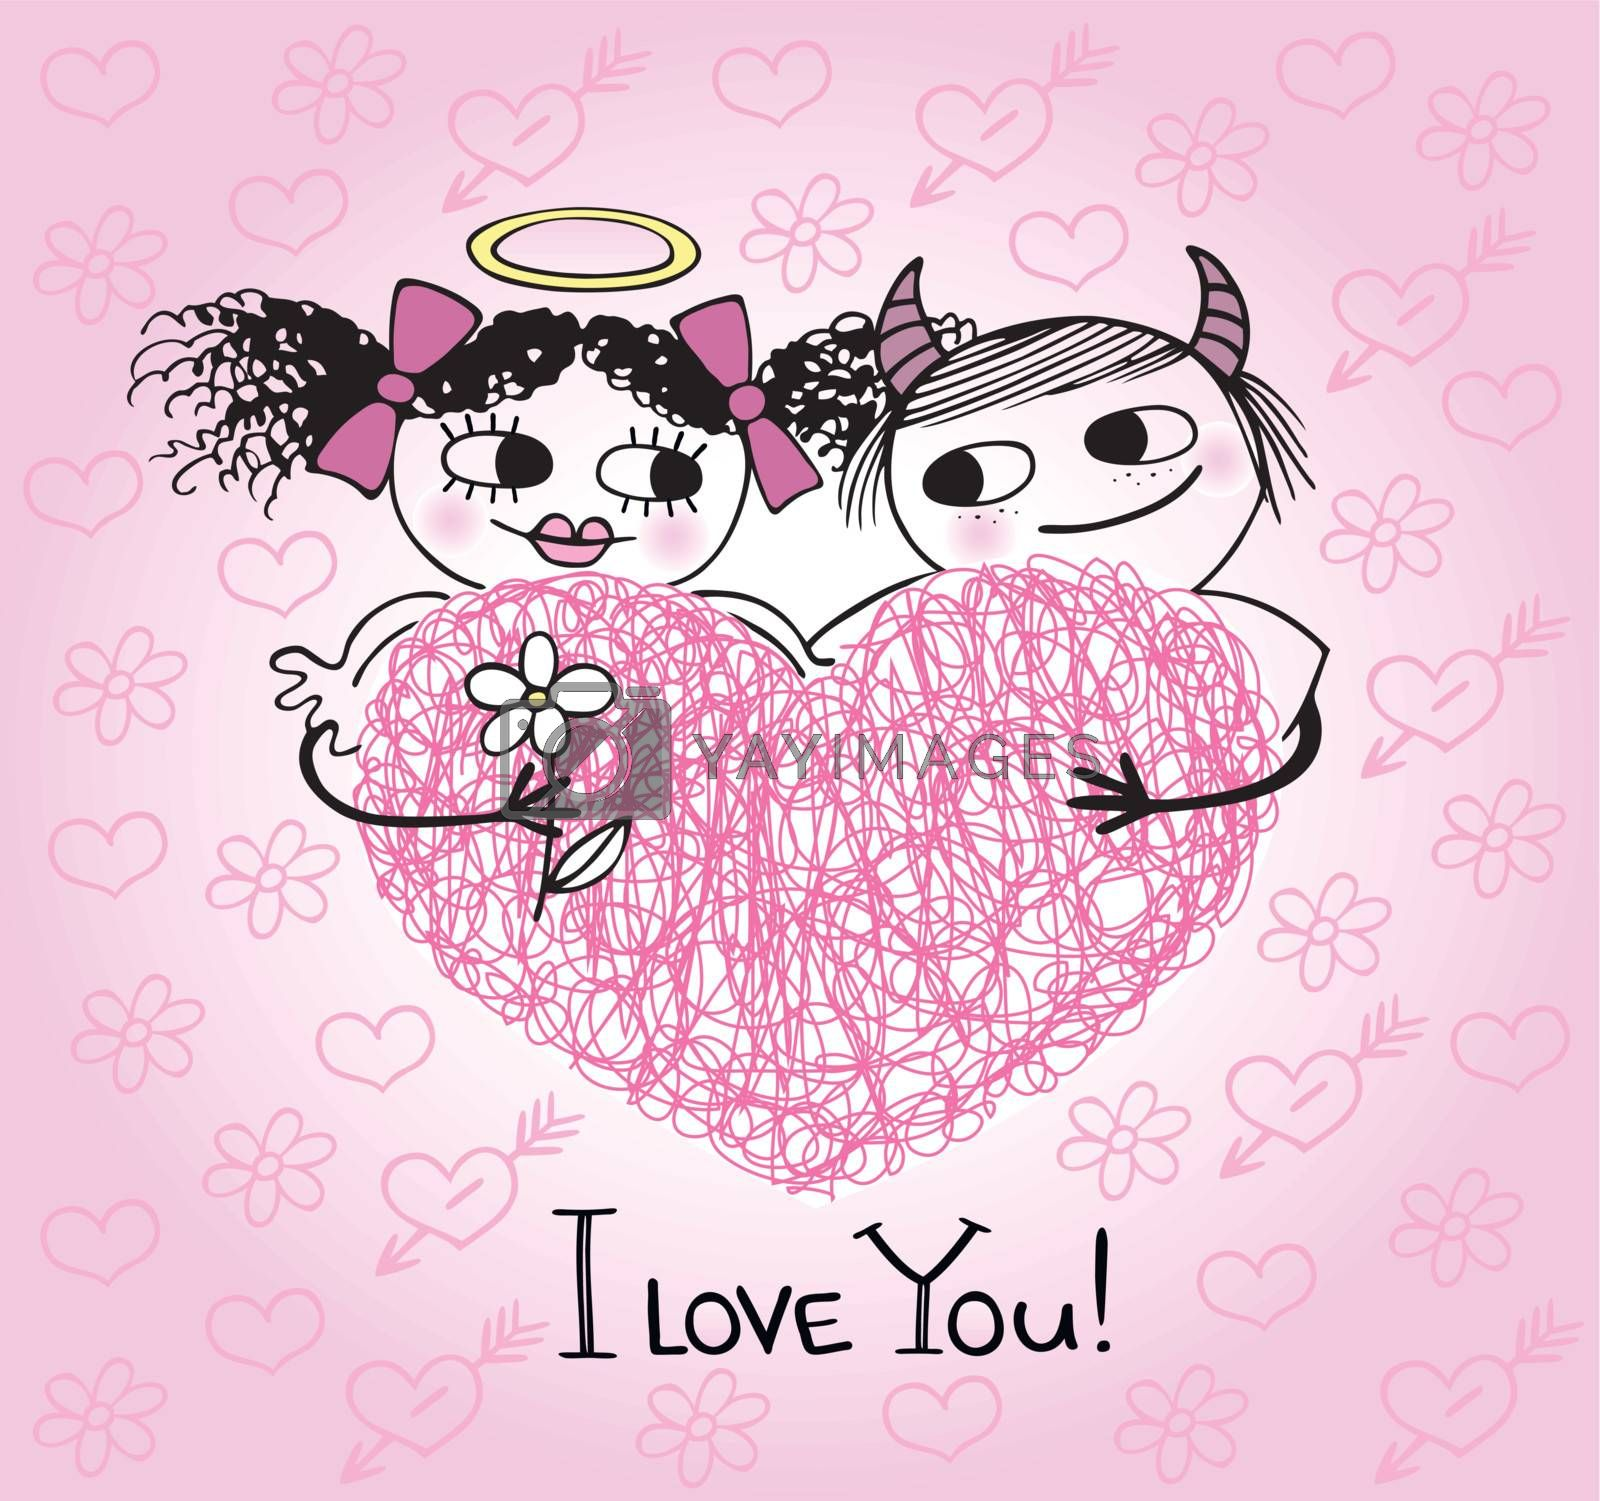 Valentines card with hearts and couple in love